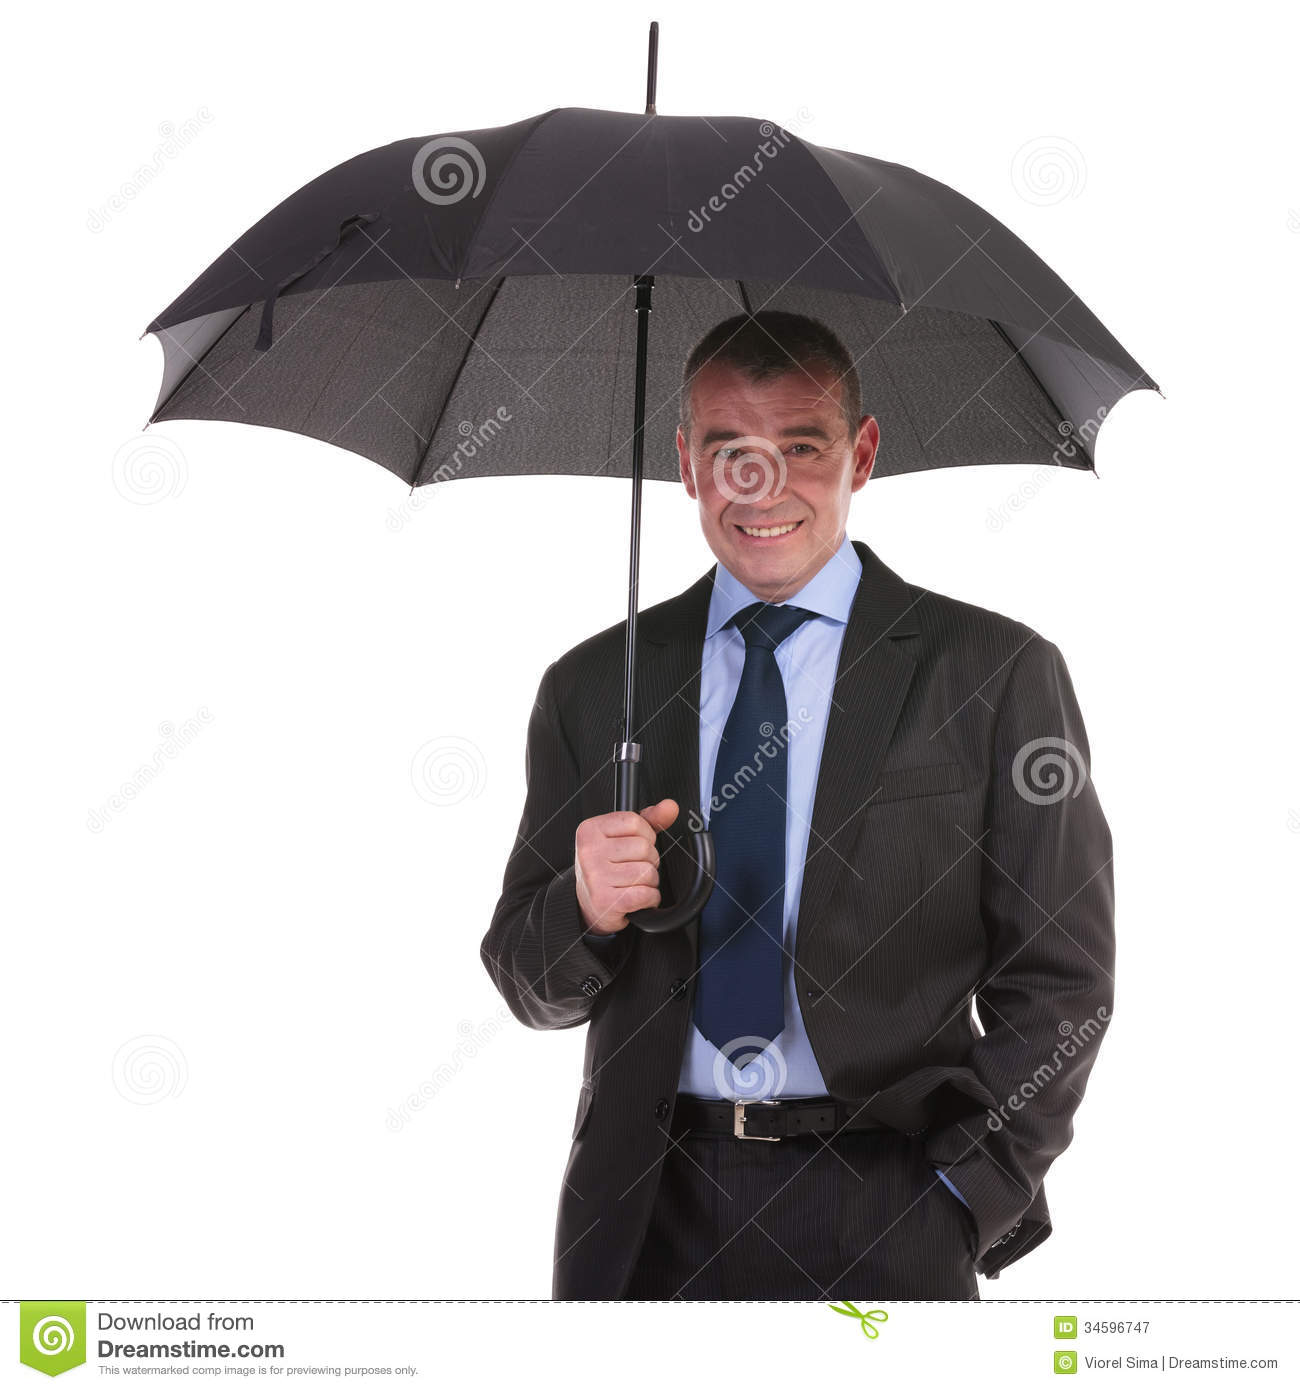 business man stands under umbrella stock image image of suit male